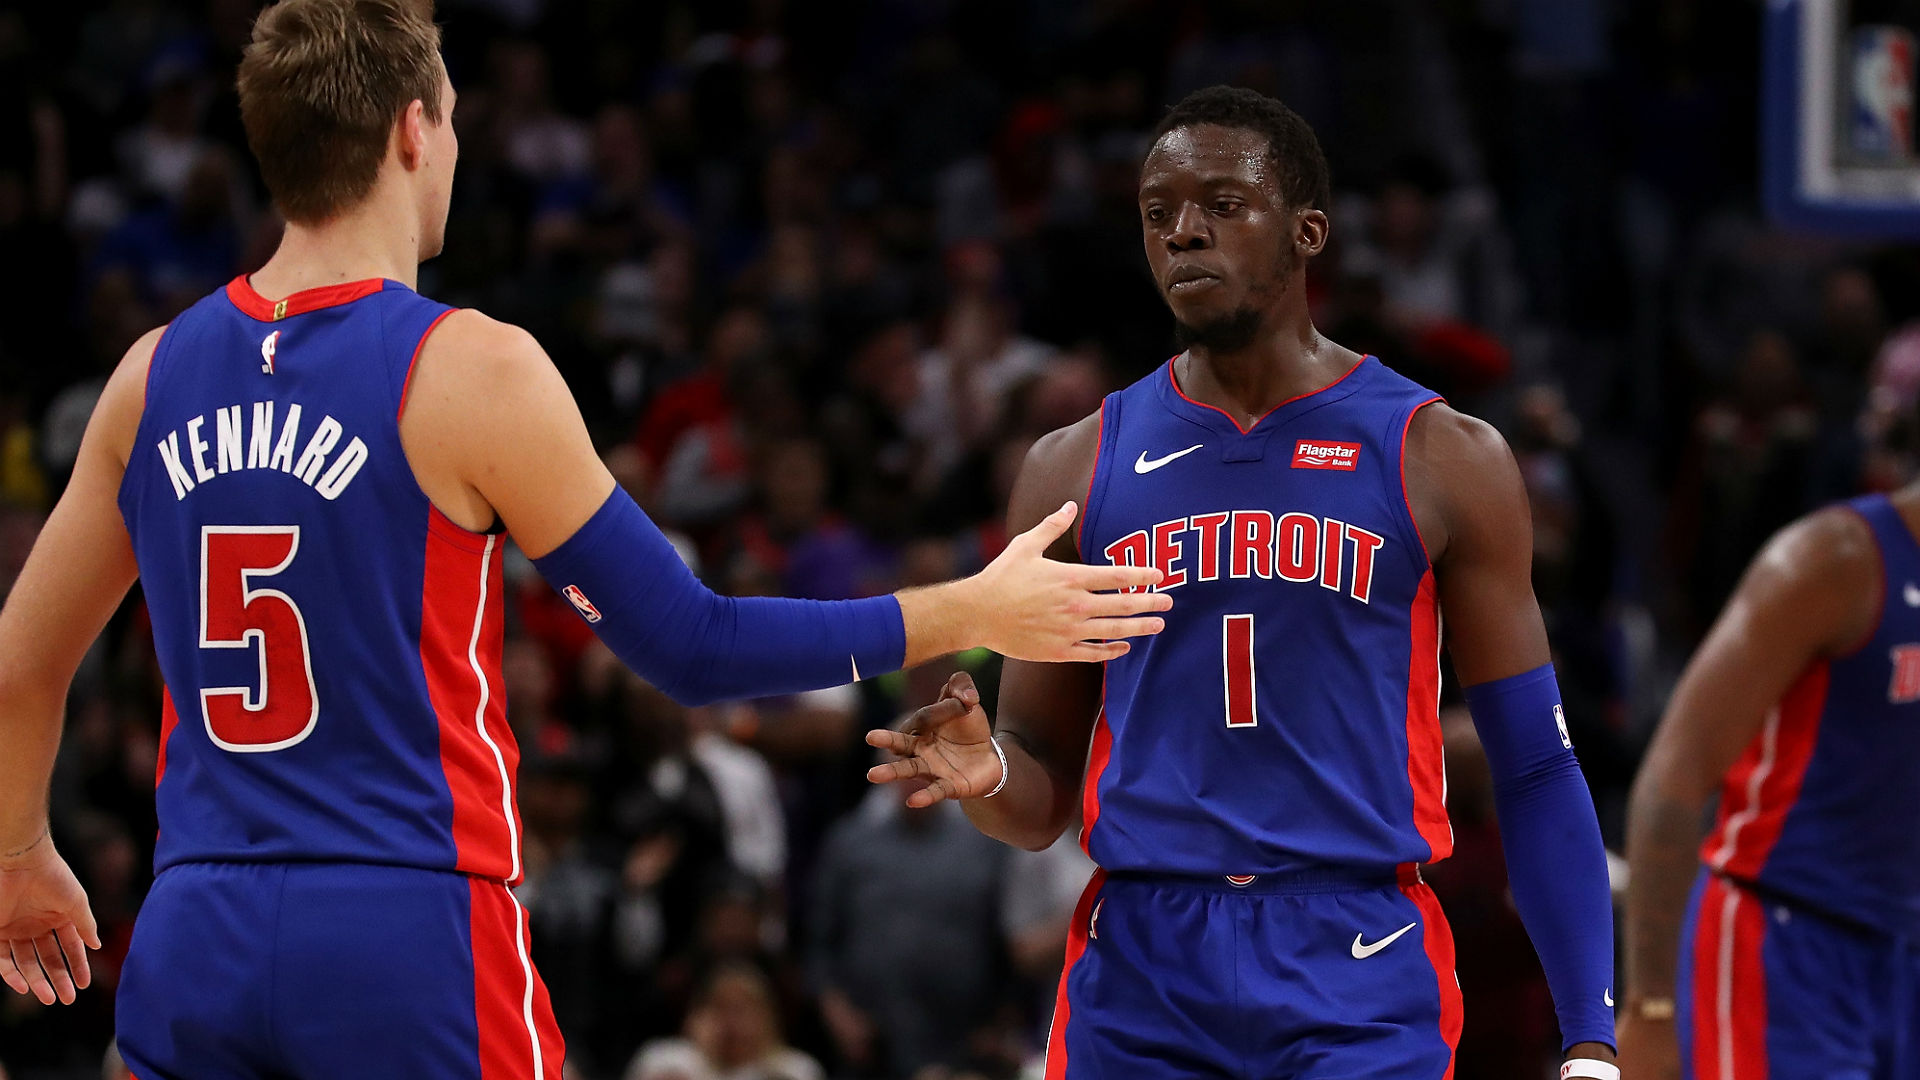 Pistons clinch final playoff spot, Wade and Nowitzki farewell NBA